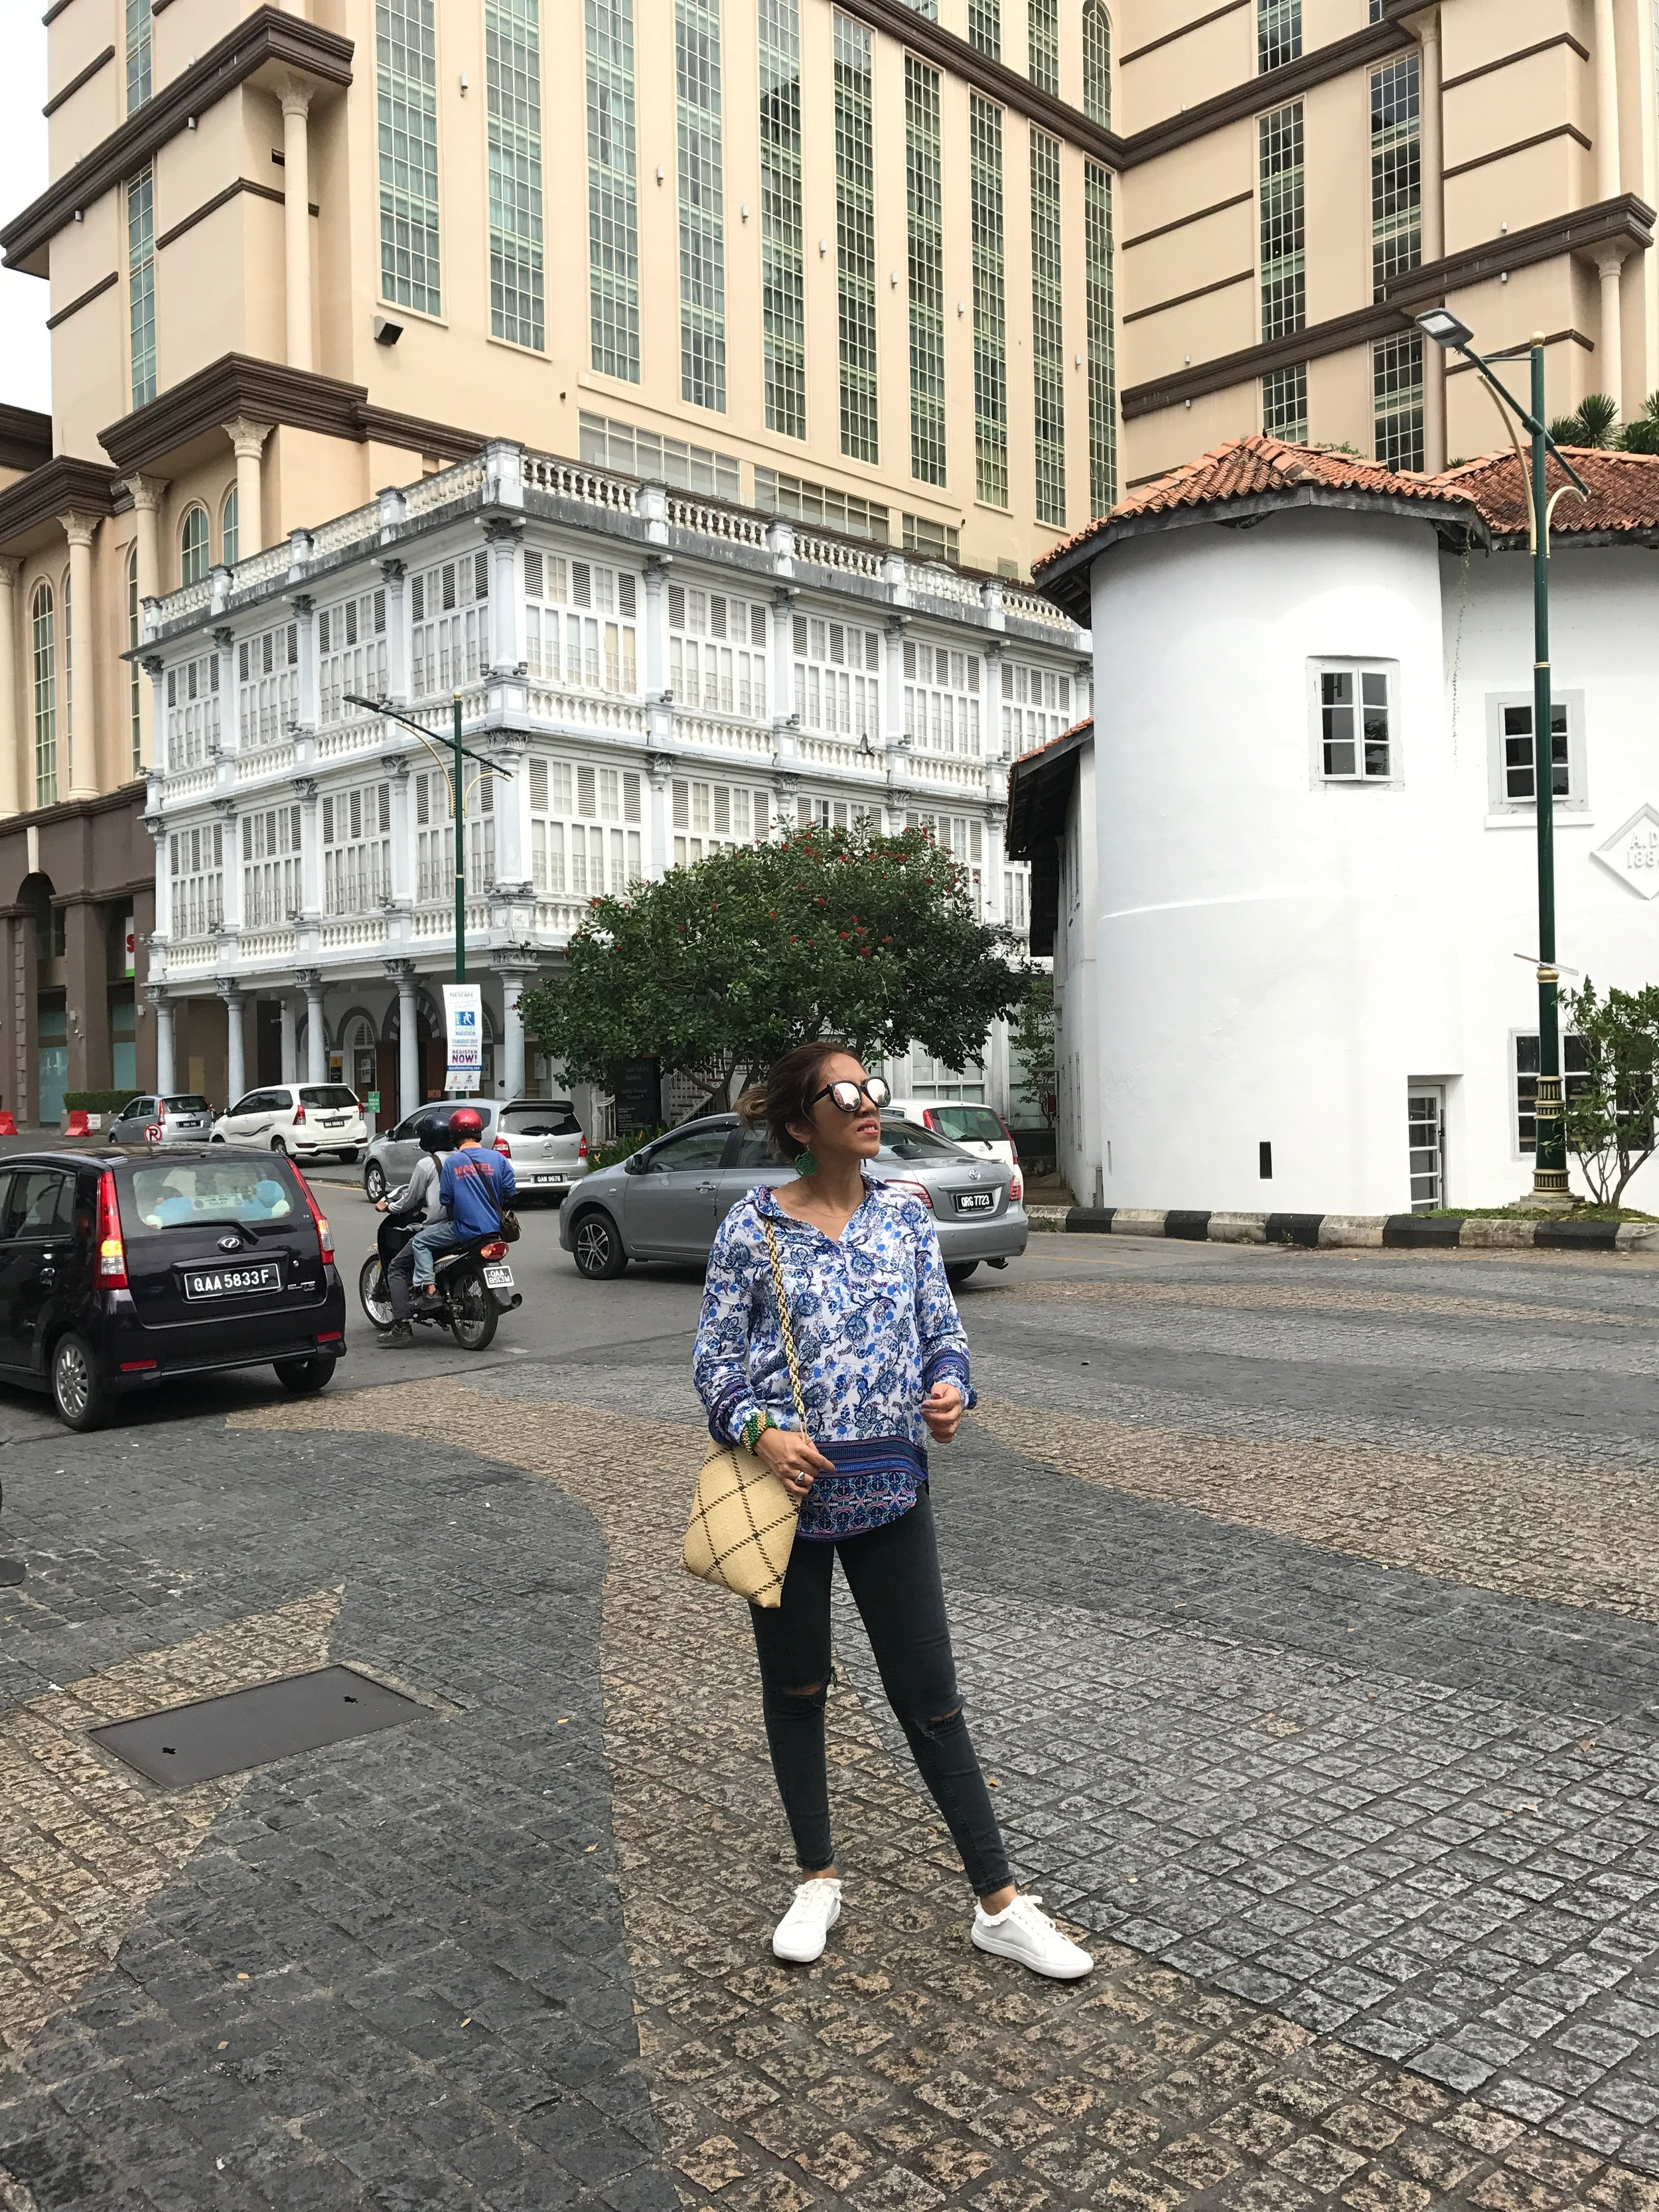 Behind me lies the historic buildings where the Textile Museum and the Round Tower can be found. The Round Tower was where Kendy Mitot and Alena Murang's exhibition pieces were found